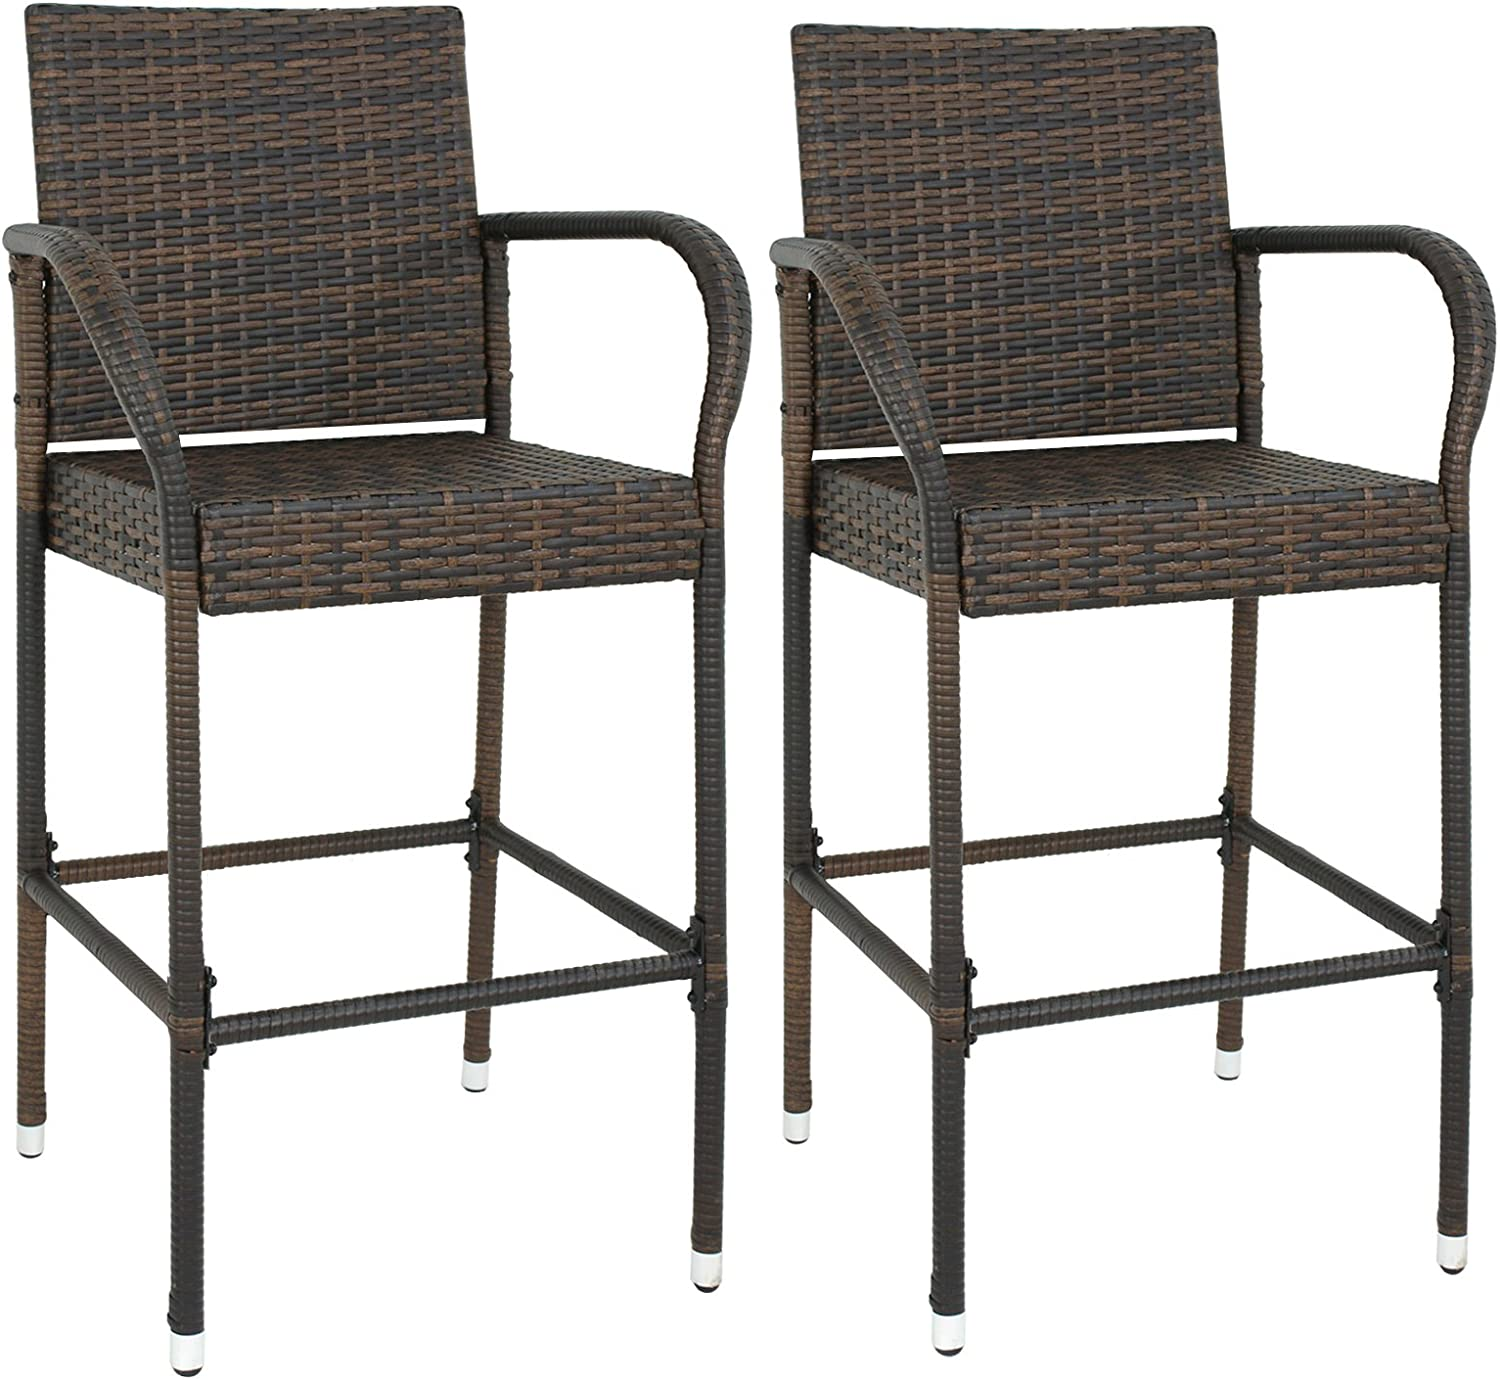 Wicker Barstool Outdoor Patio Furniture Bar Stools All Weather Rattan Chair w/Armrest and Footrest for Garden Pool Lawn Porch Backyard, Set of 2